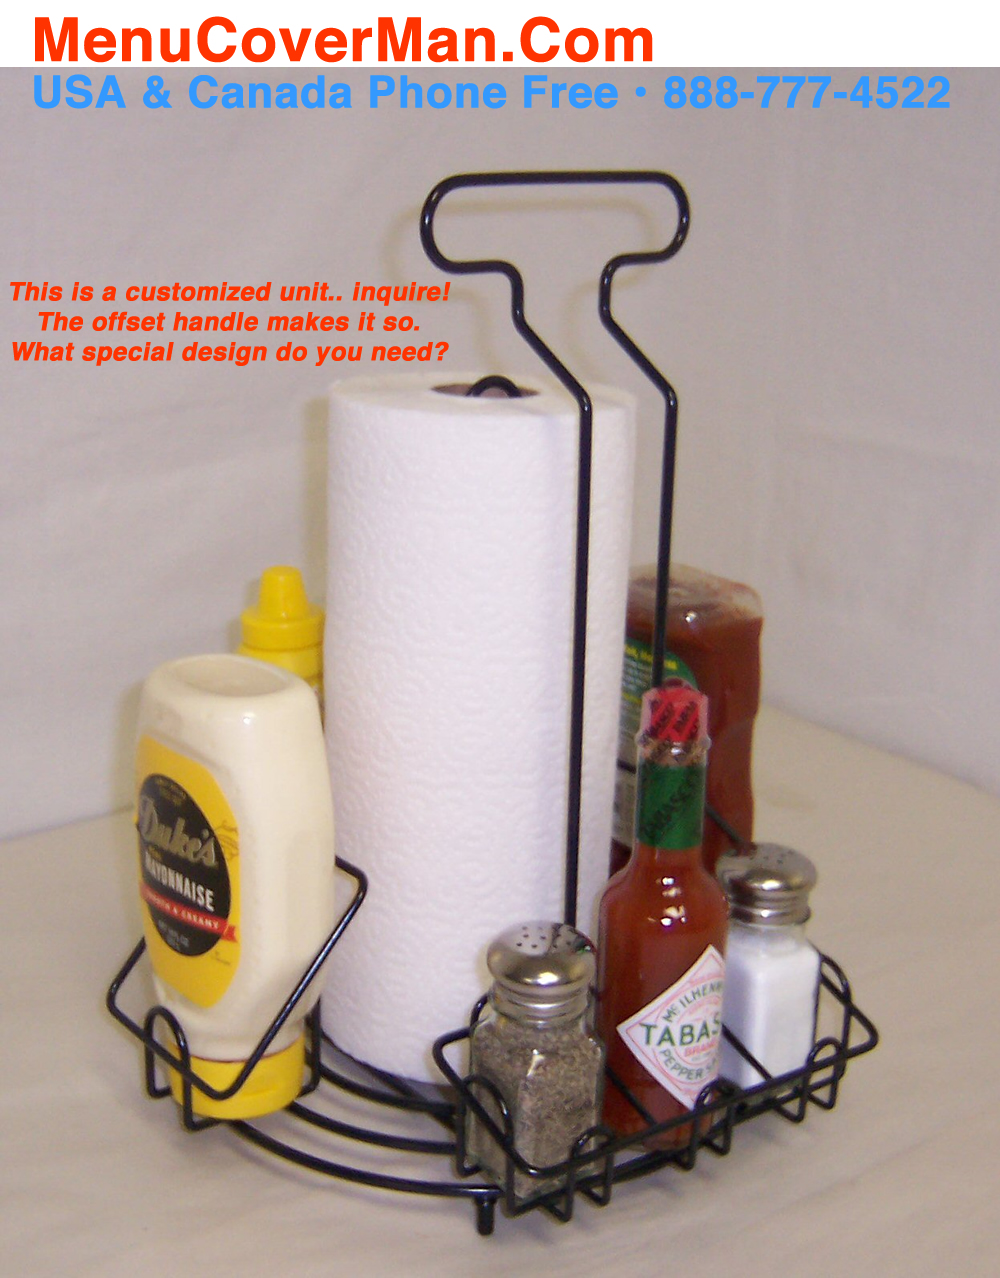 Customized wire condiment holder with offset handle.